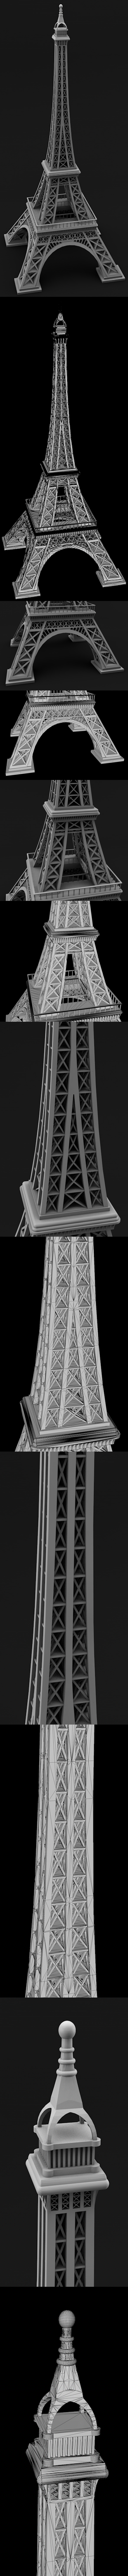 Eiffel_tower_model Full details - 3DOcean Item for Sale